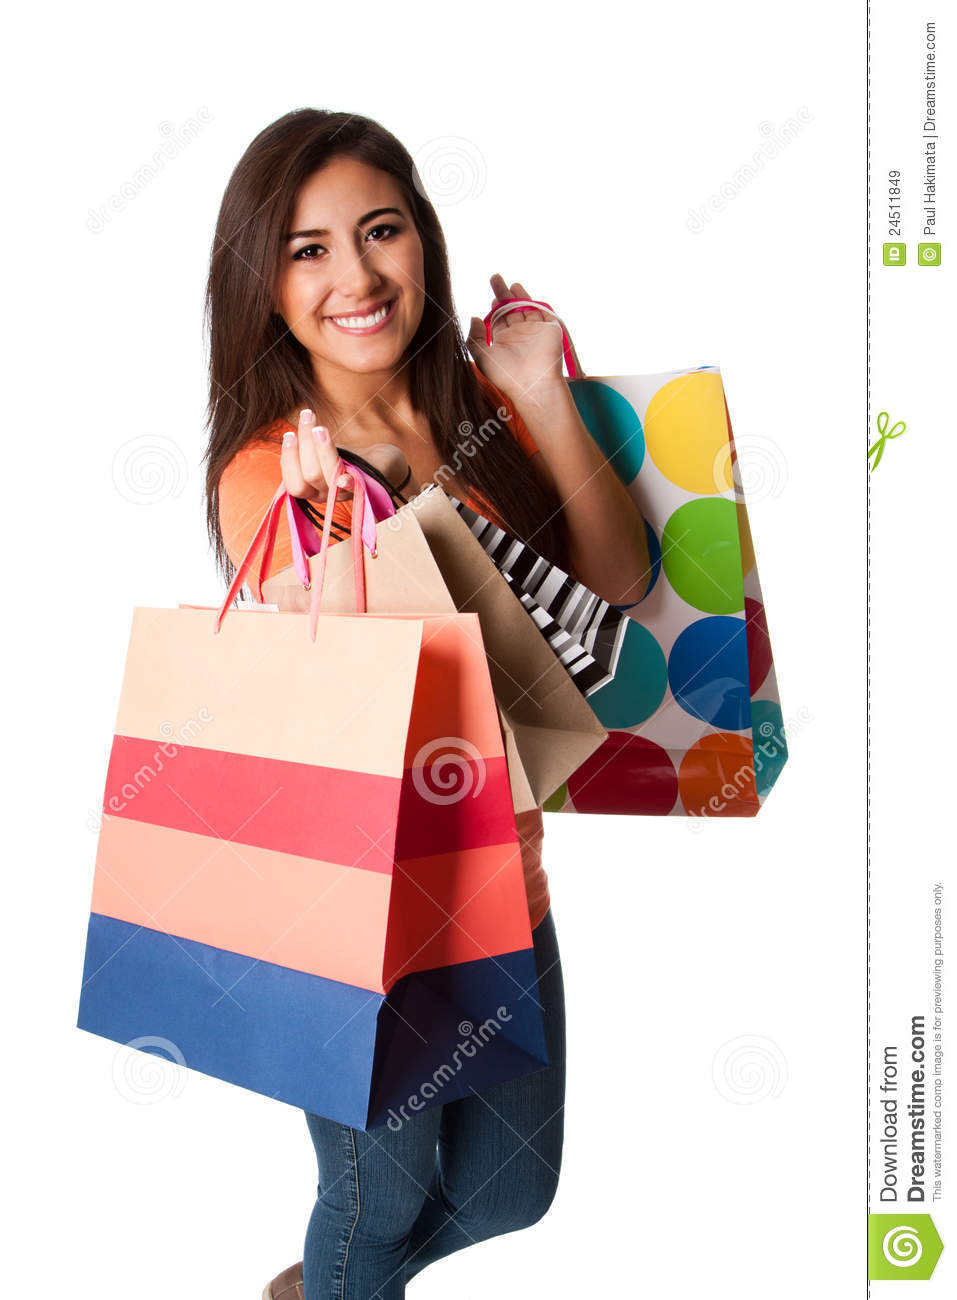 happy-young-woman-shopping-spree-2451184